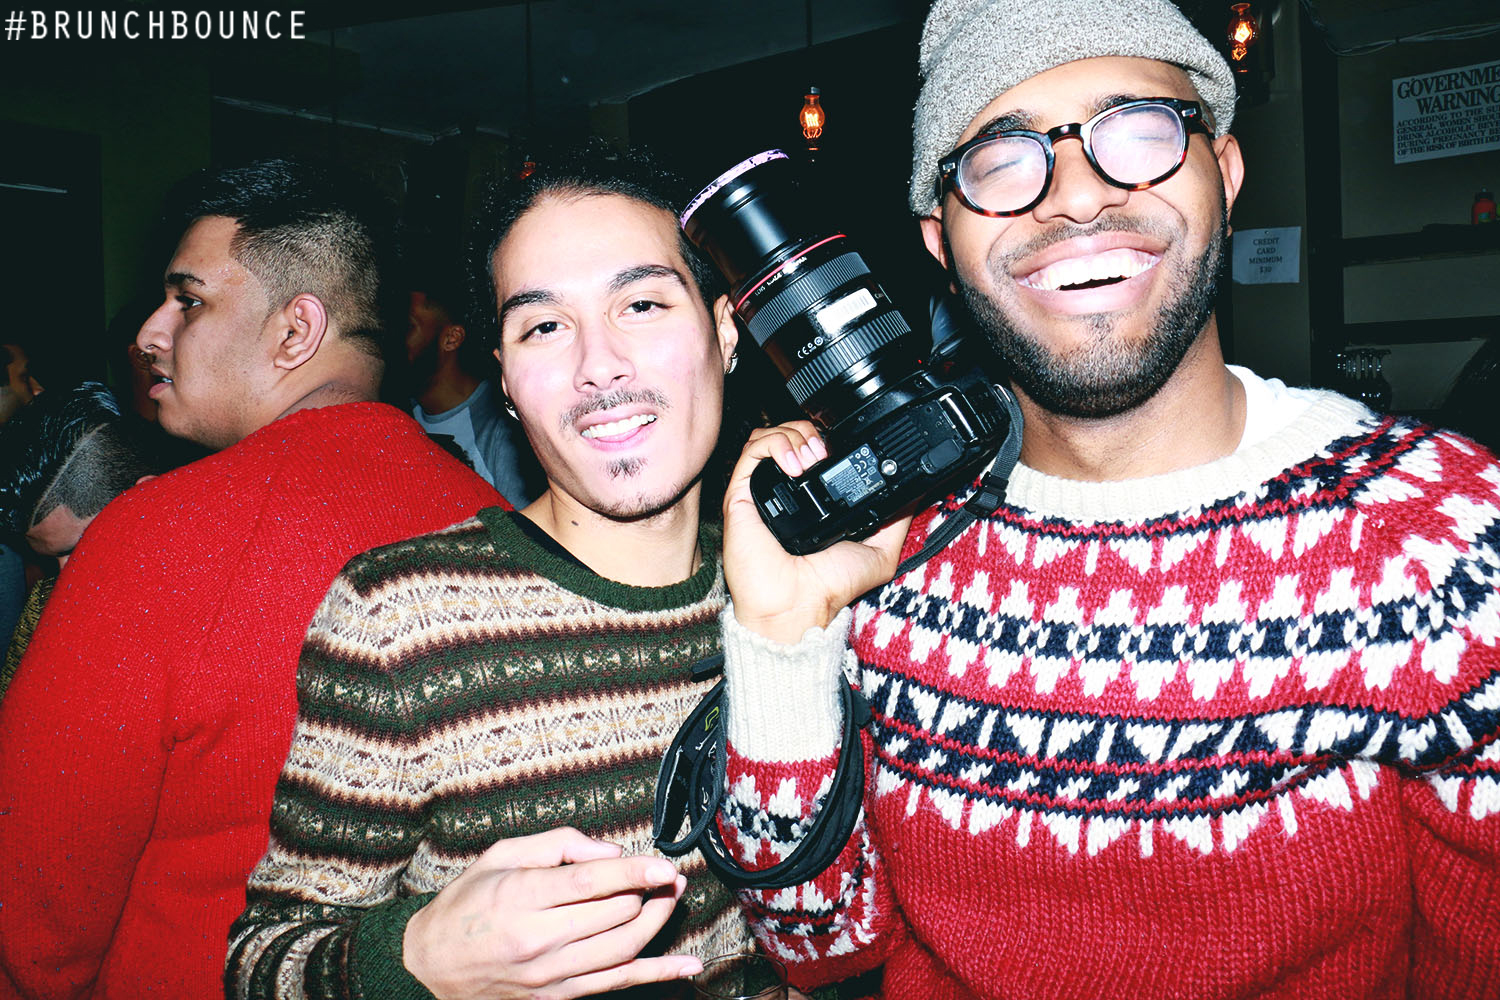 brunchbounce-ugly-christmas-sweater-party-122014_16056916746_o.jpg